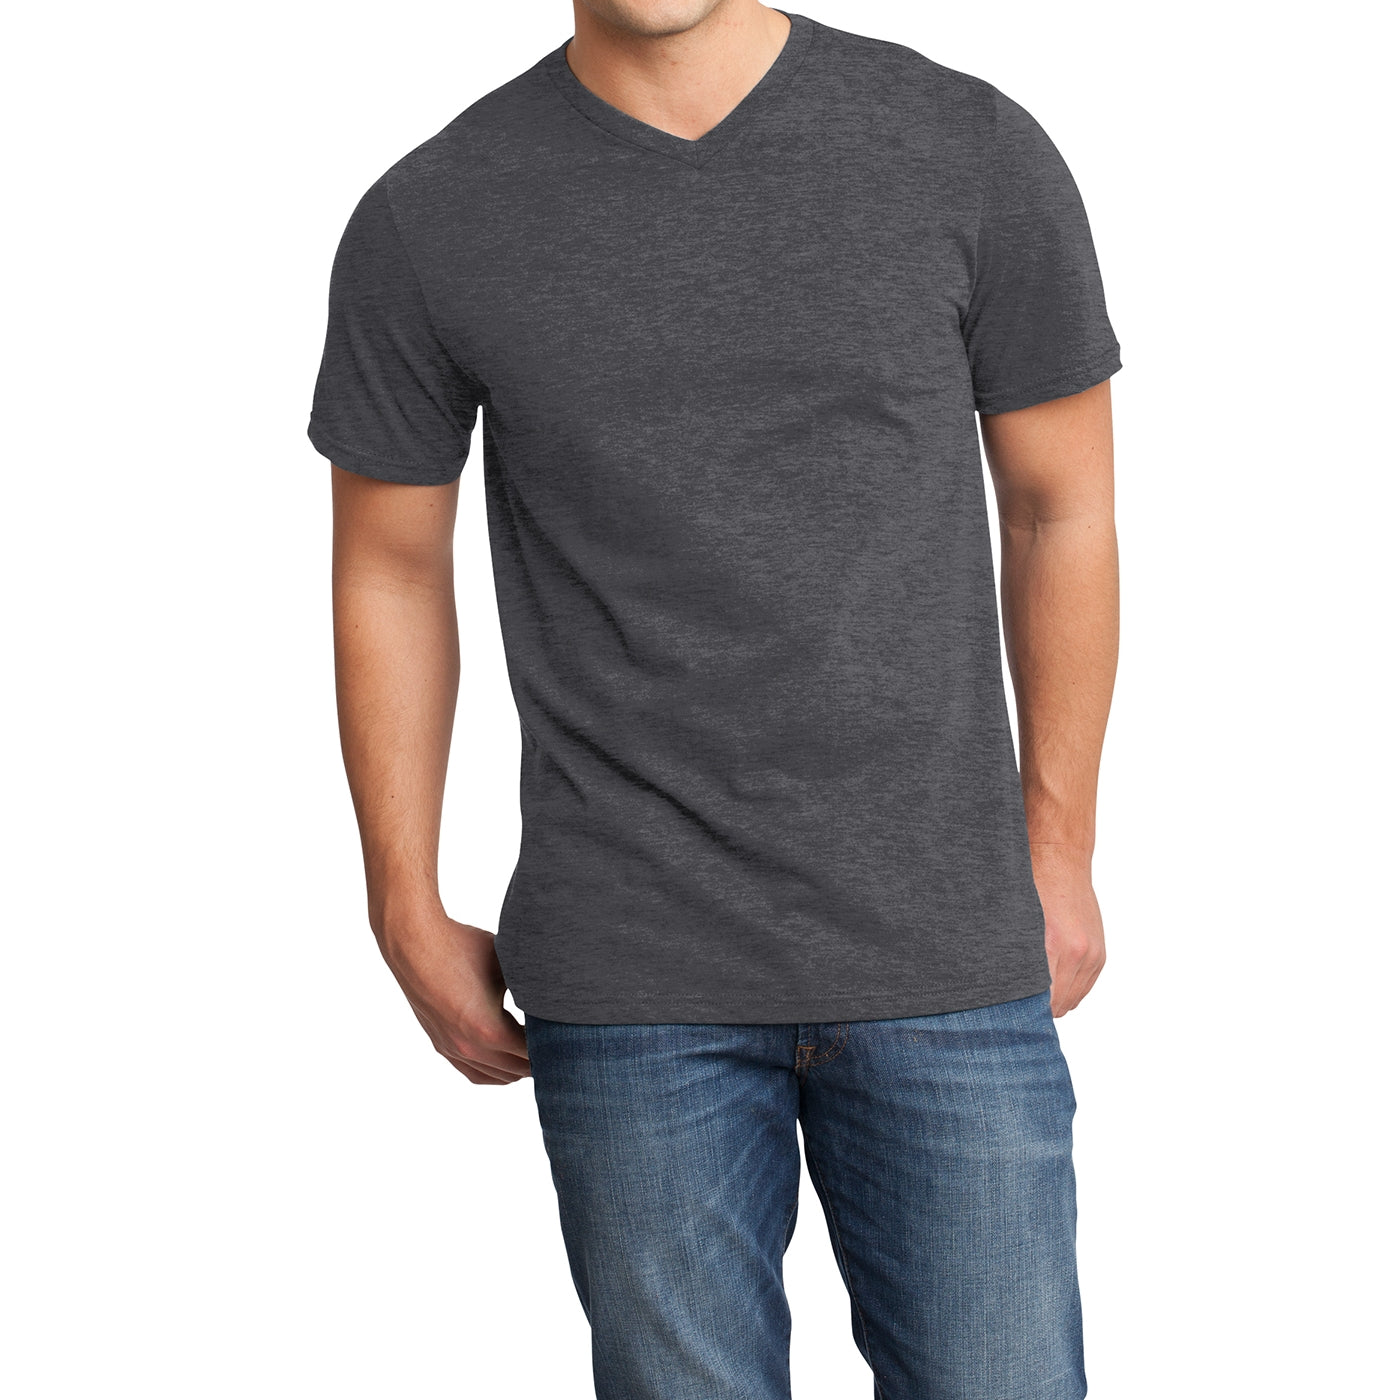 Men's Young  Very Important Tee V-Neck - Heathered Charcoal